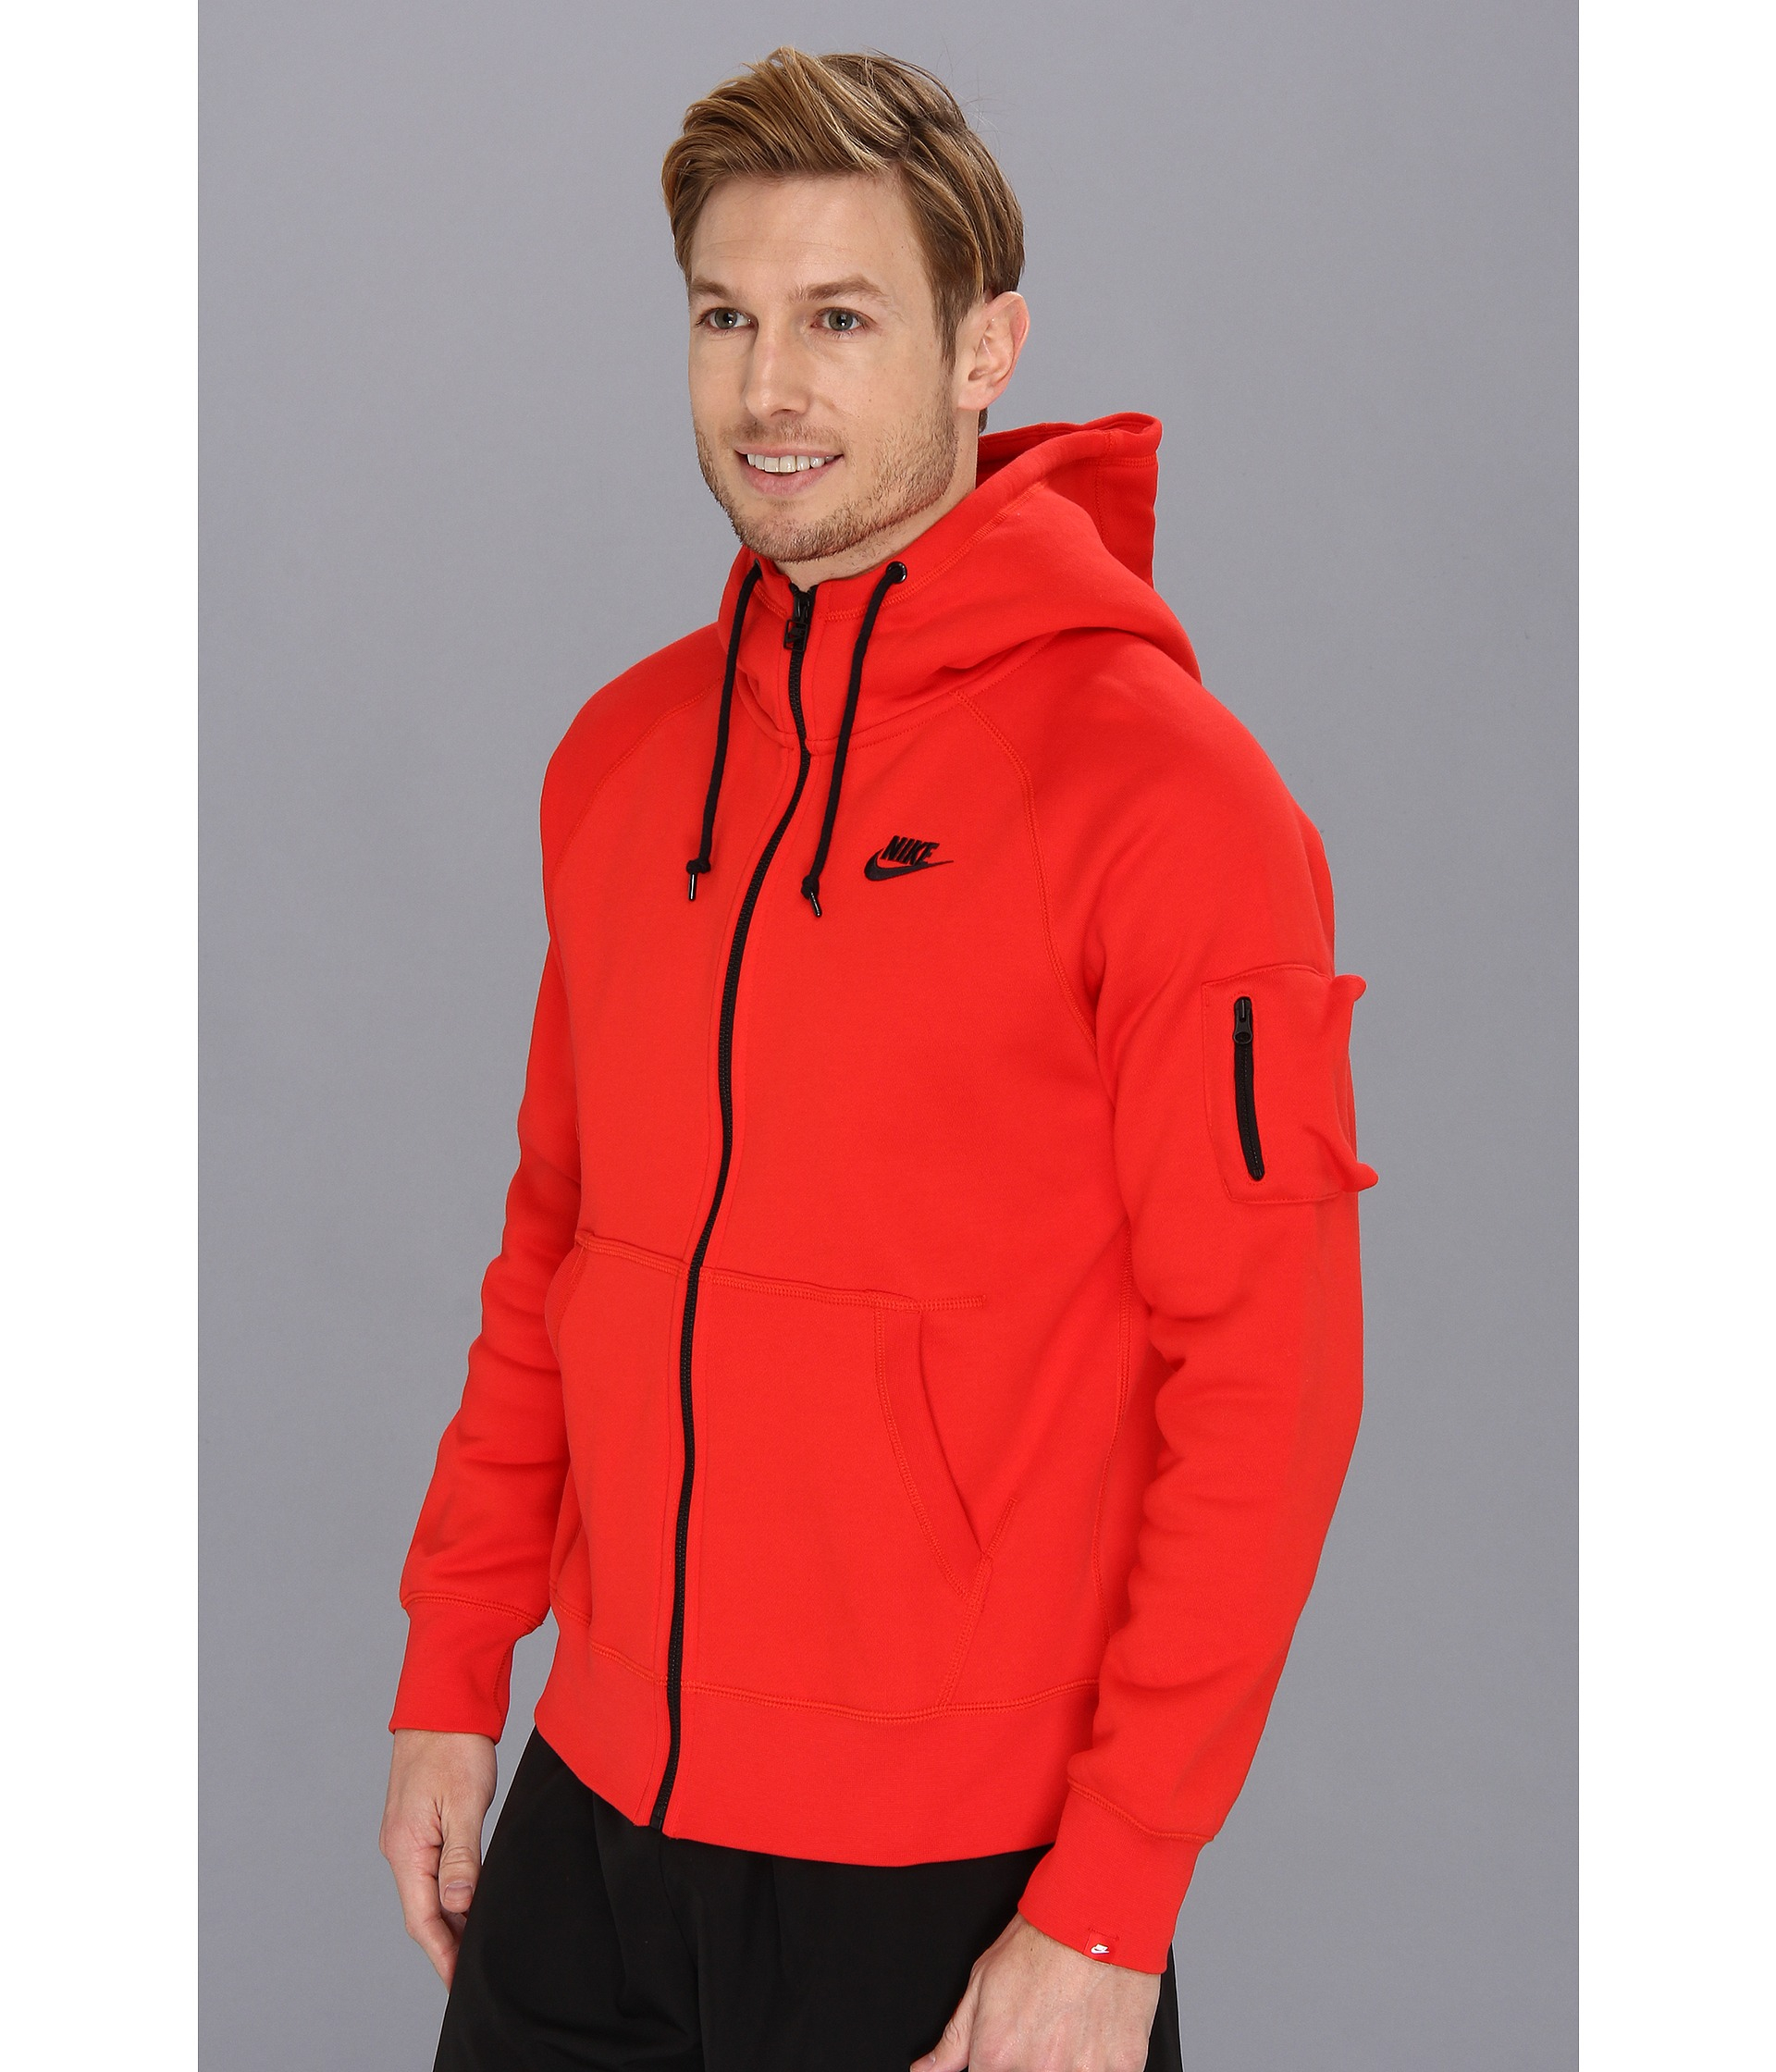 Lyst - Nike Aw77 Fleece Fz Hoodie in Red for Men ddea7c83a